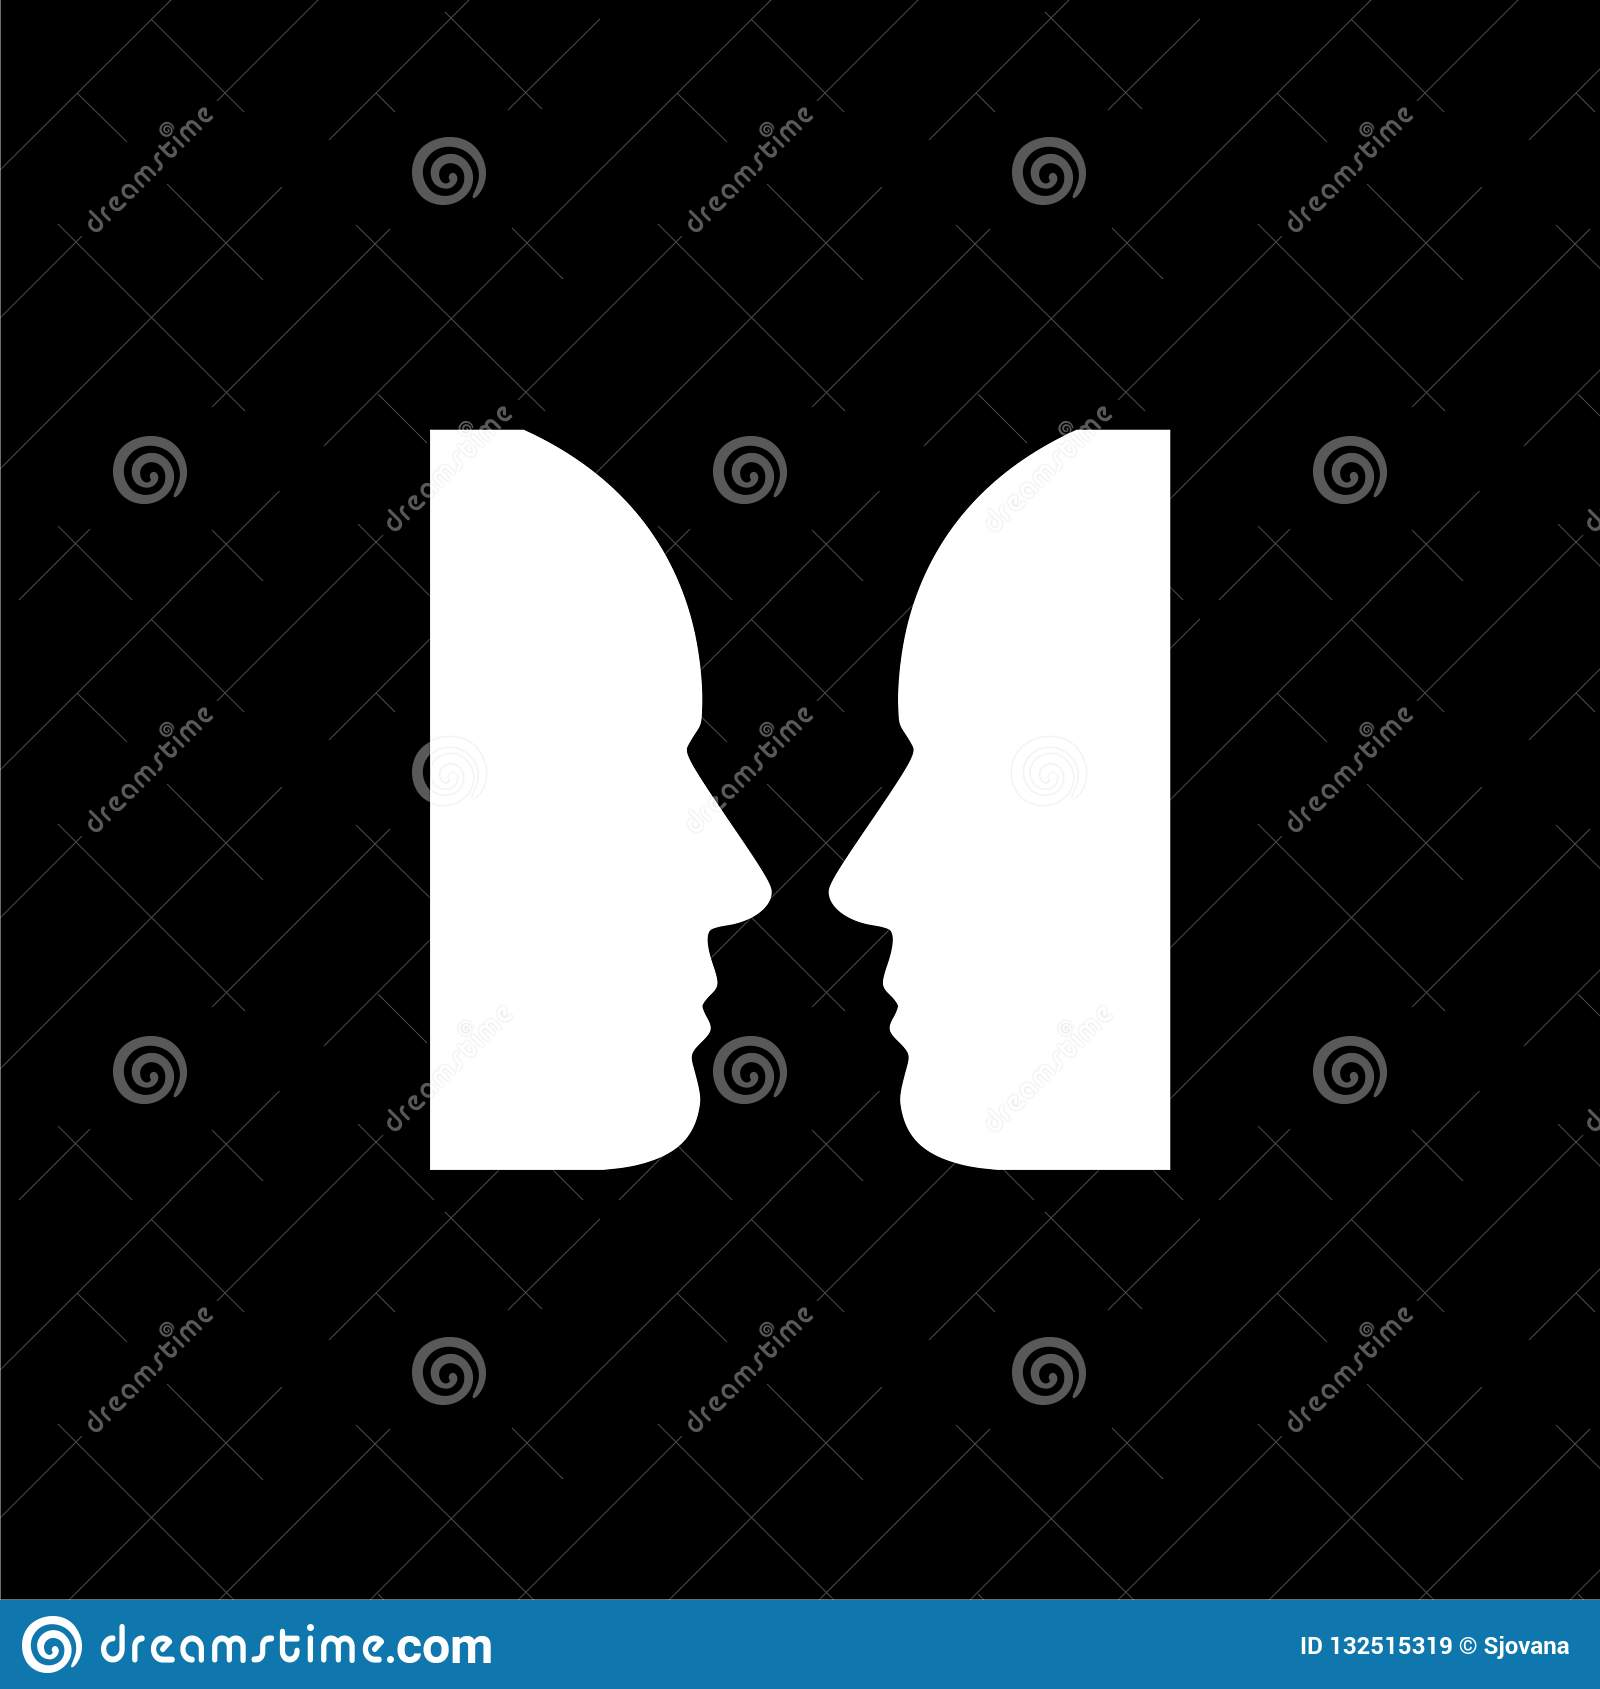 Two Face Profile View, Optical Illusion Icon Or Logo On ...  Optical Illusion Logo